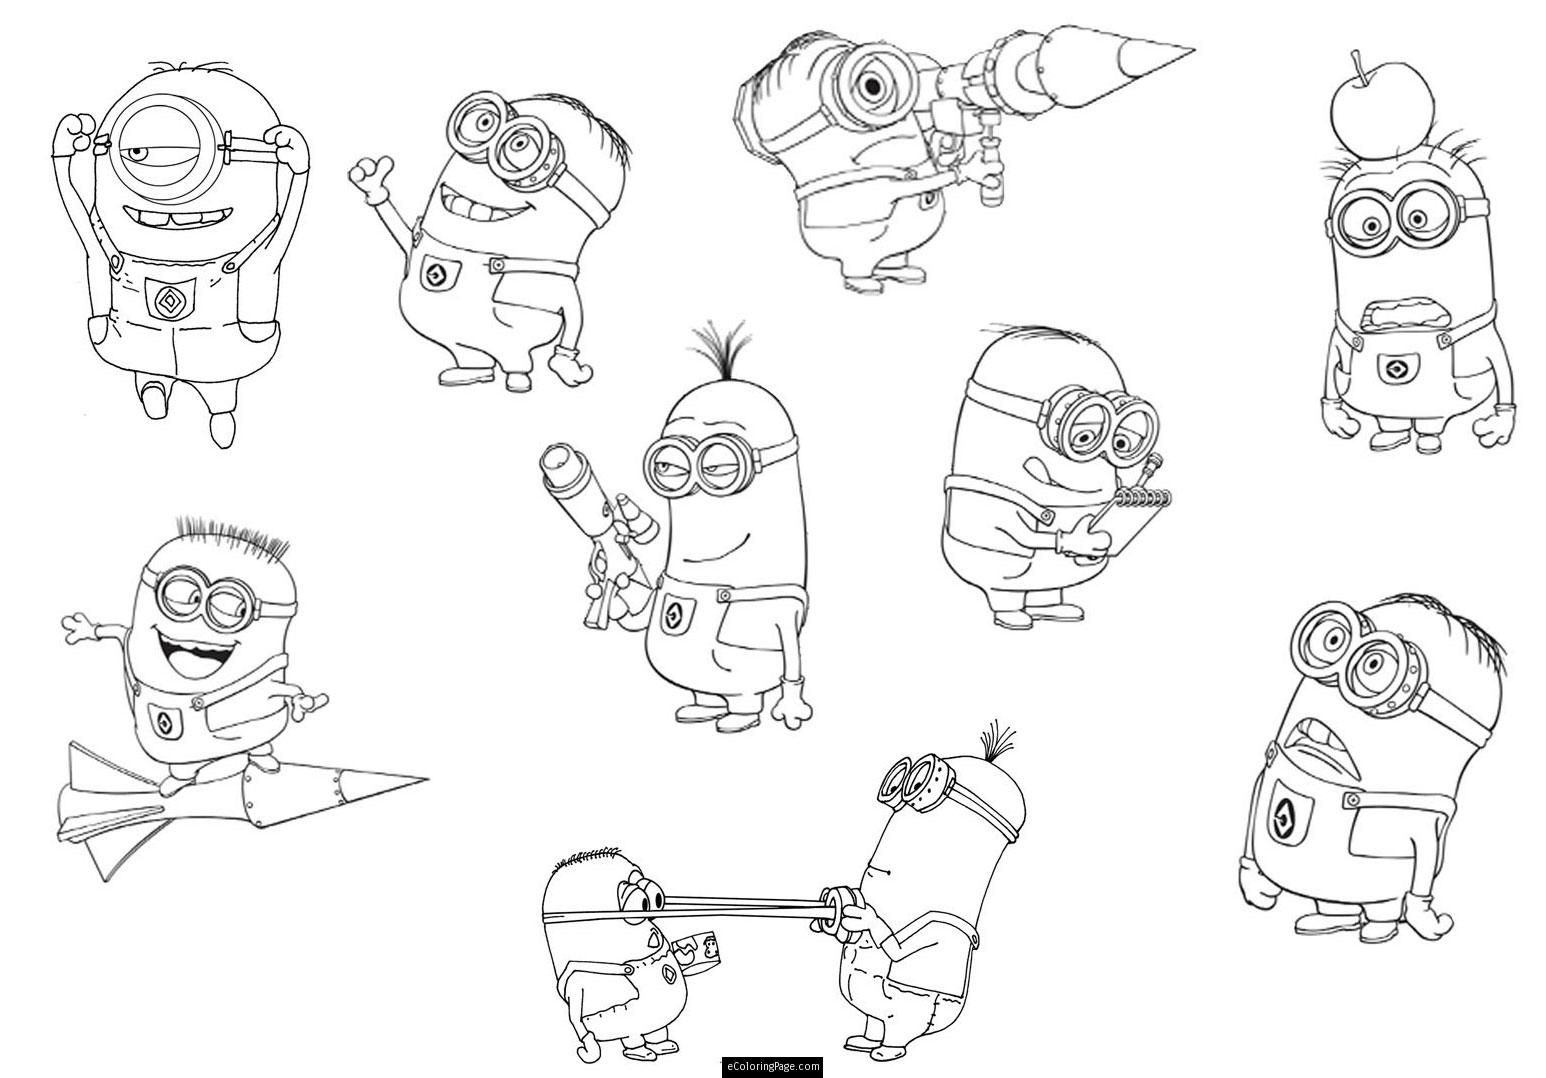 despicable me 2 minions coloring pages printable Memes Pinterest